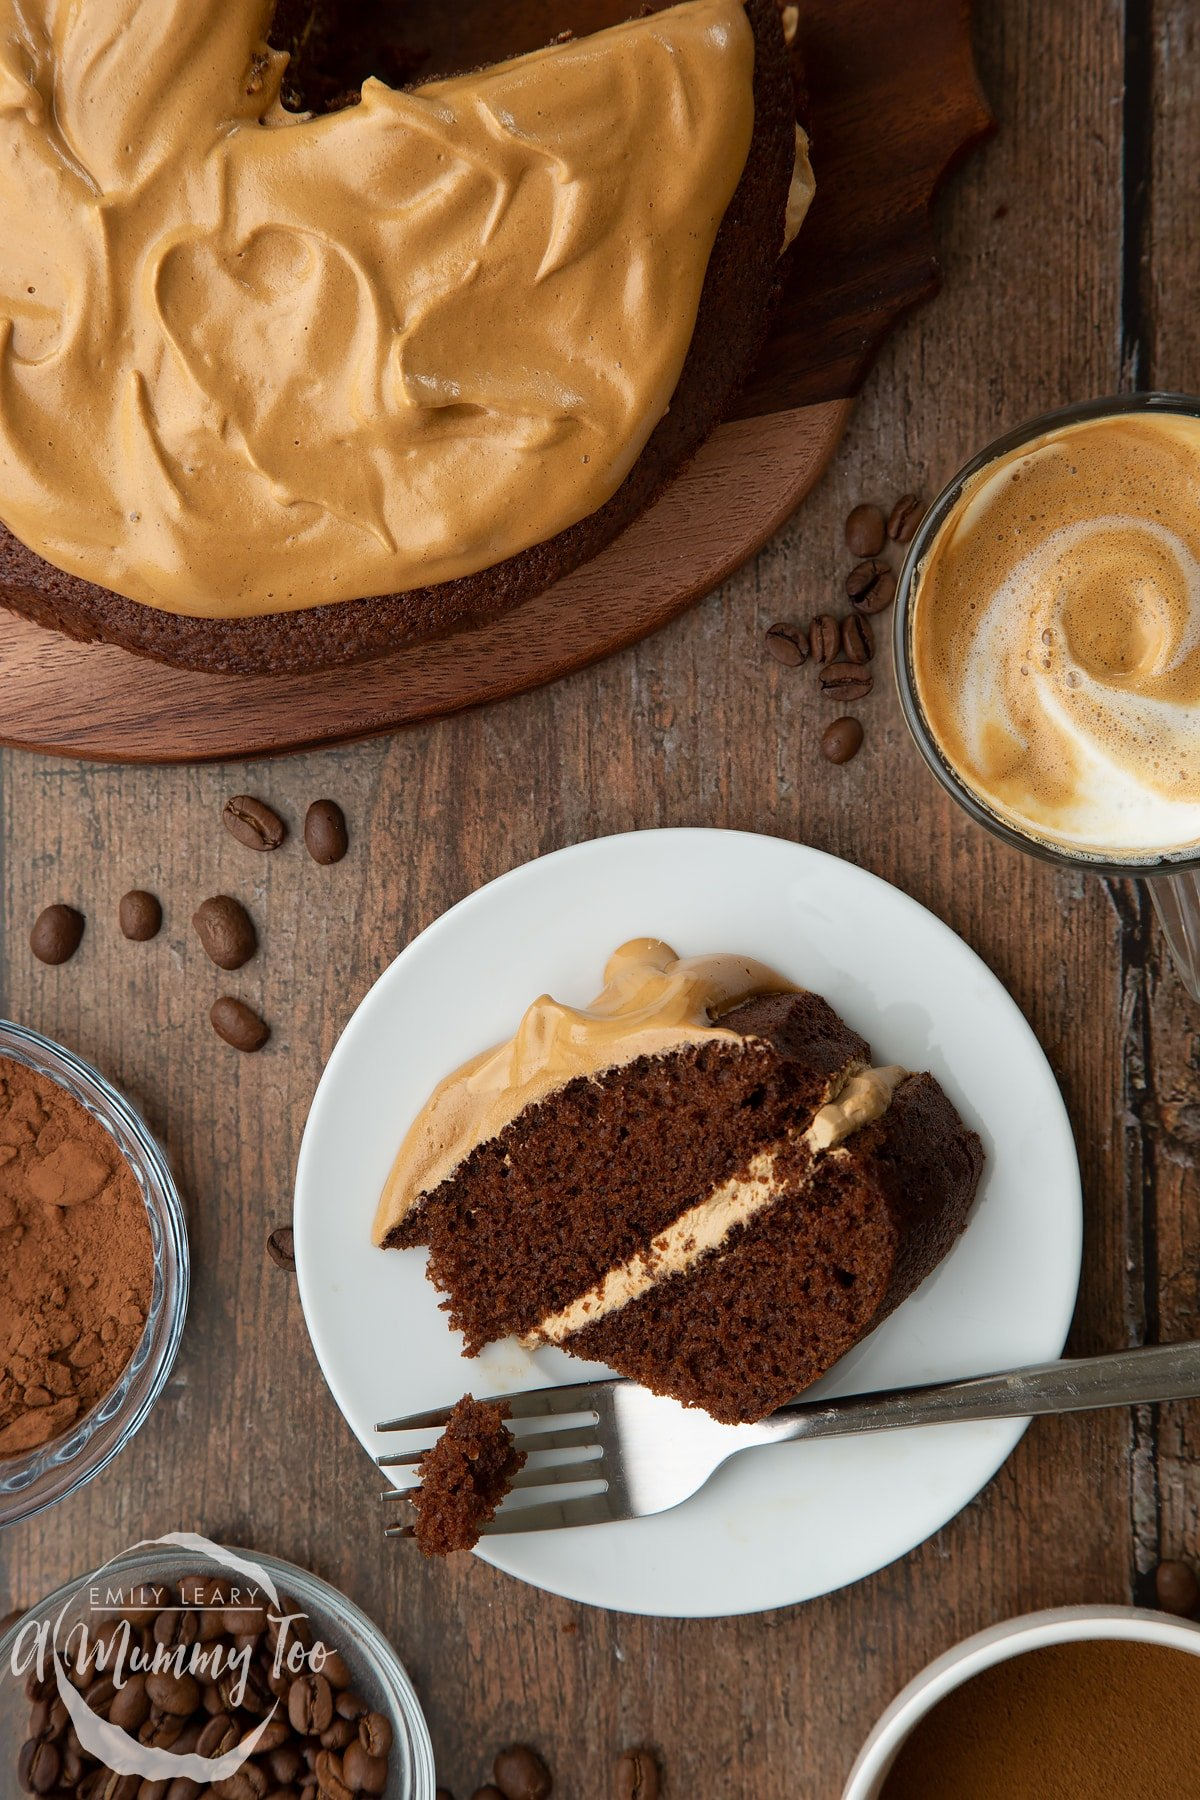 A slice of dalgona coffee cake on a white plate. A fork has taken a piece. A cup of dalgona coffee, cocoa and coffee beans are shown to the sides.